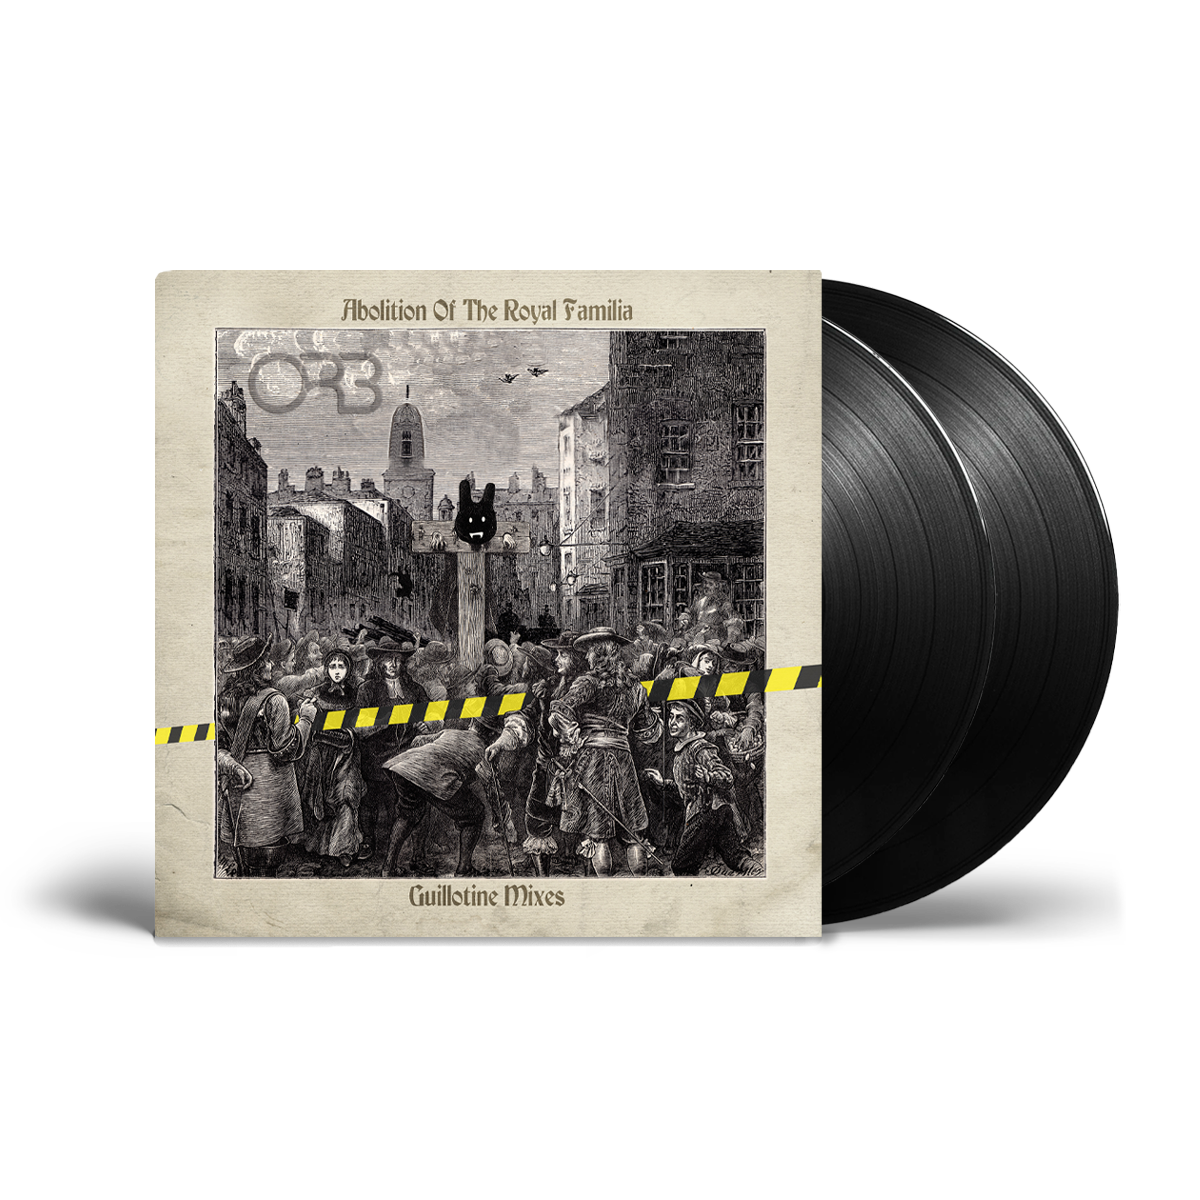 Buy Online The ORB - Abolition Of The Royal Familia - Guillotine Mixes Black Double Vinyl